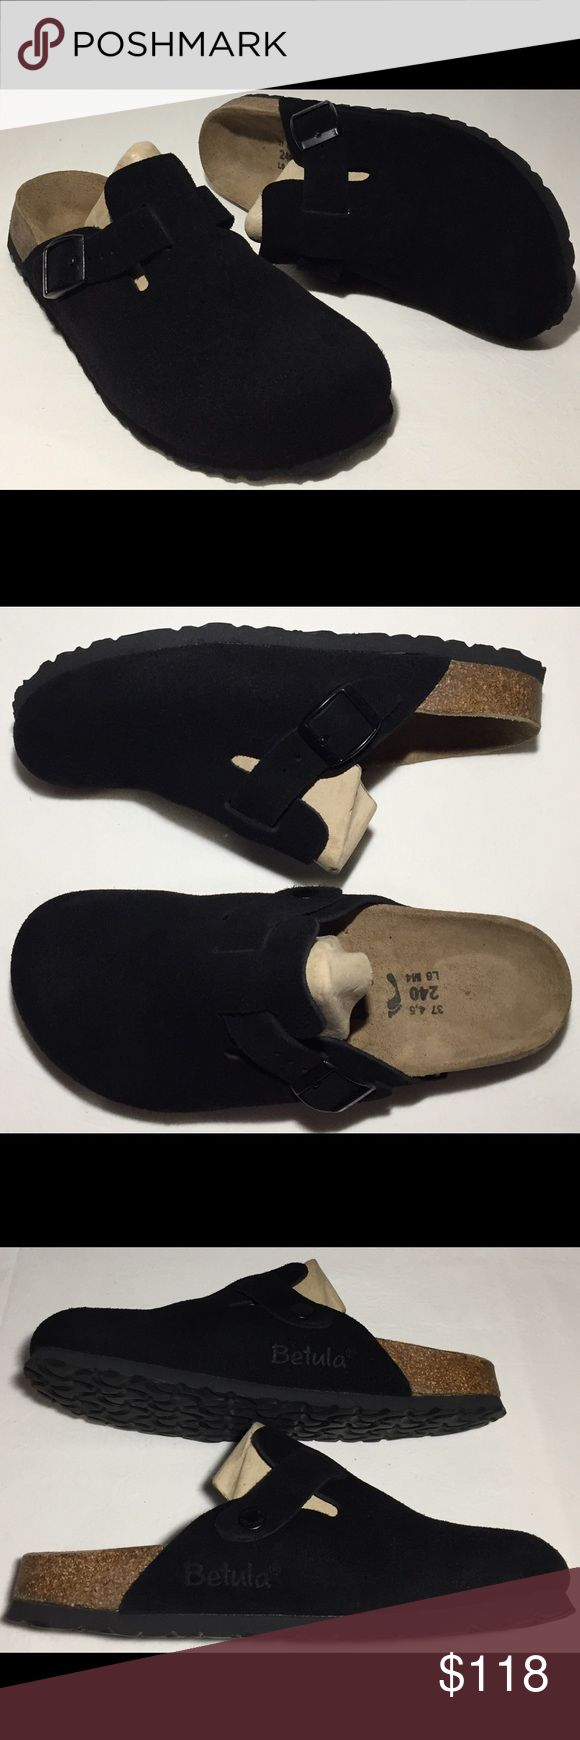 BIRKENSTOCK BOSTON Black Suede Clogs 37 6 BIRKENSTOCK BOSTON Black Suede Clogs Size 37 ( US 6 Narrow ) Birkenstock shoes fit different then your average shoe. I wear a size 6M but these wear too big they are more like a size 7M - 7.5M Birkenstock Shoes Mules & Clogs